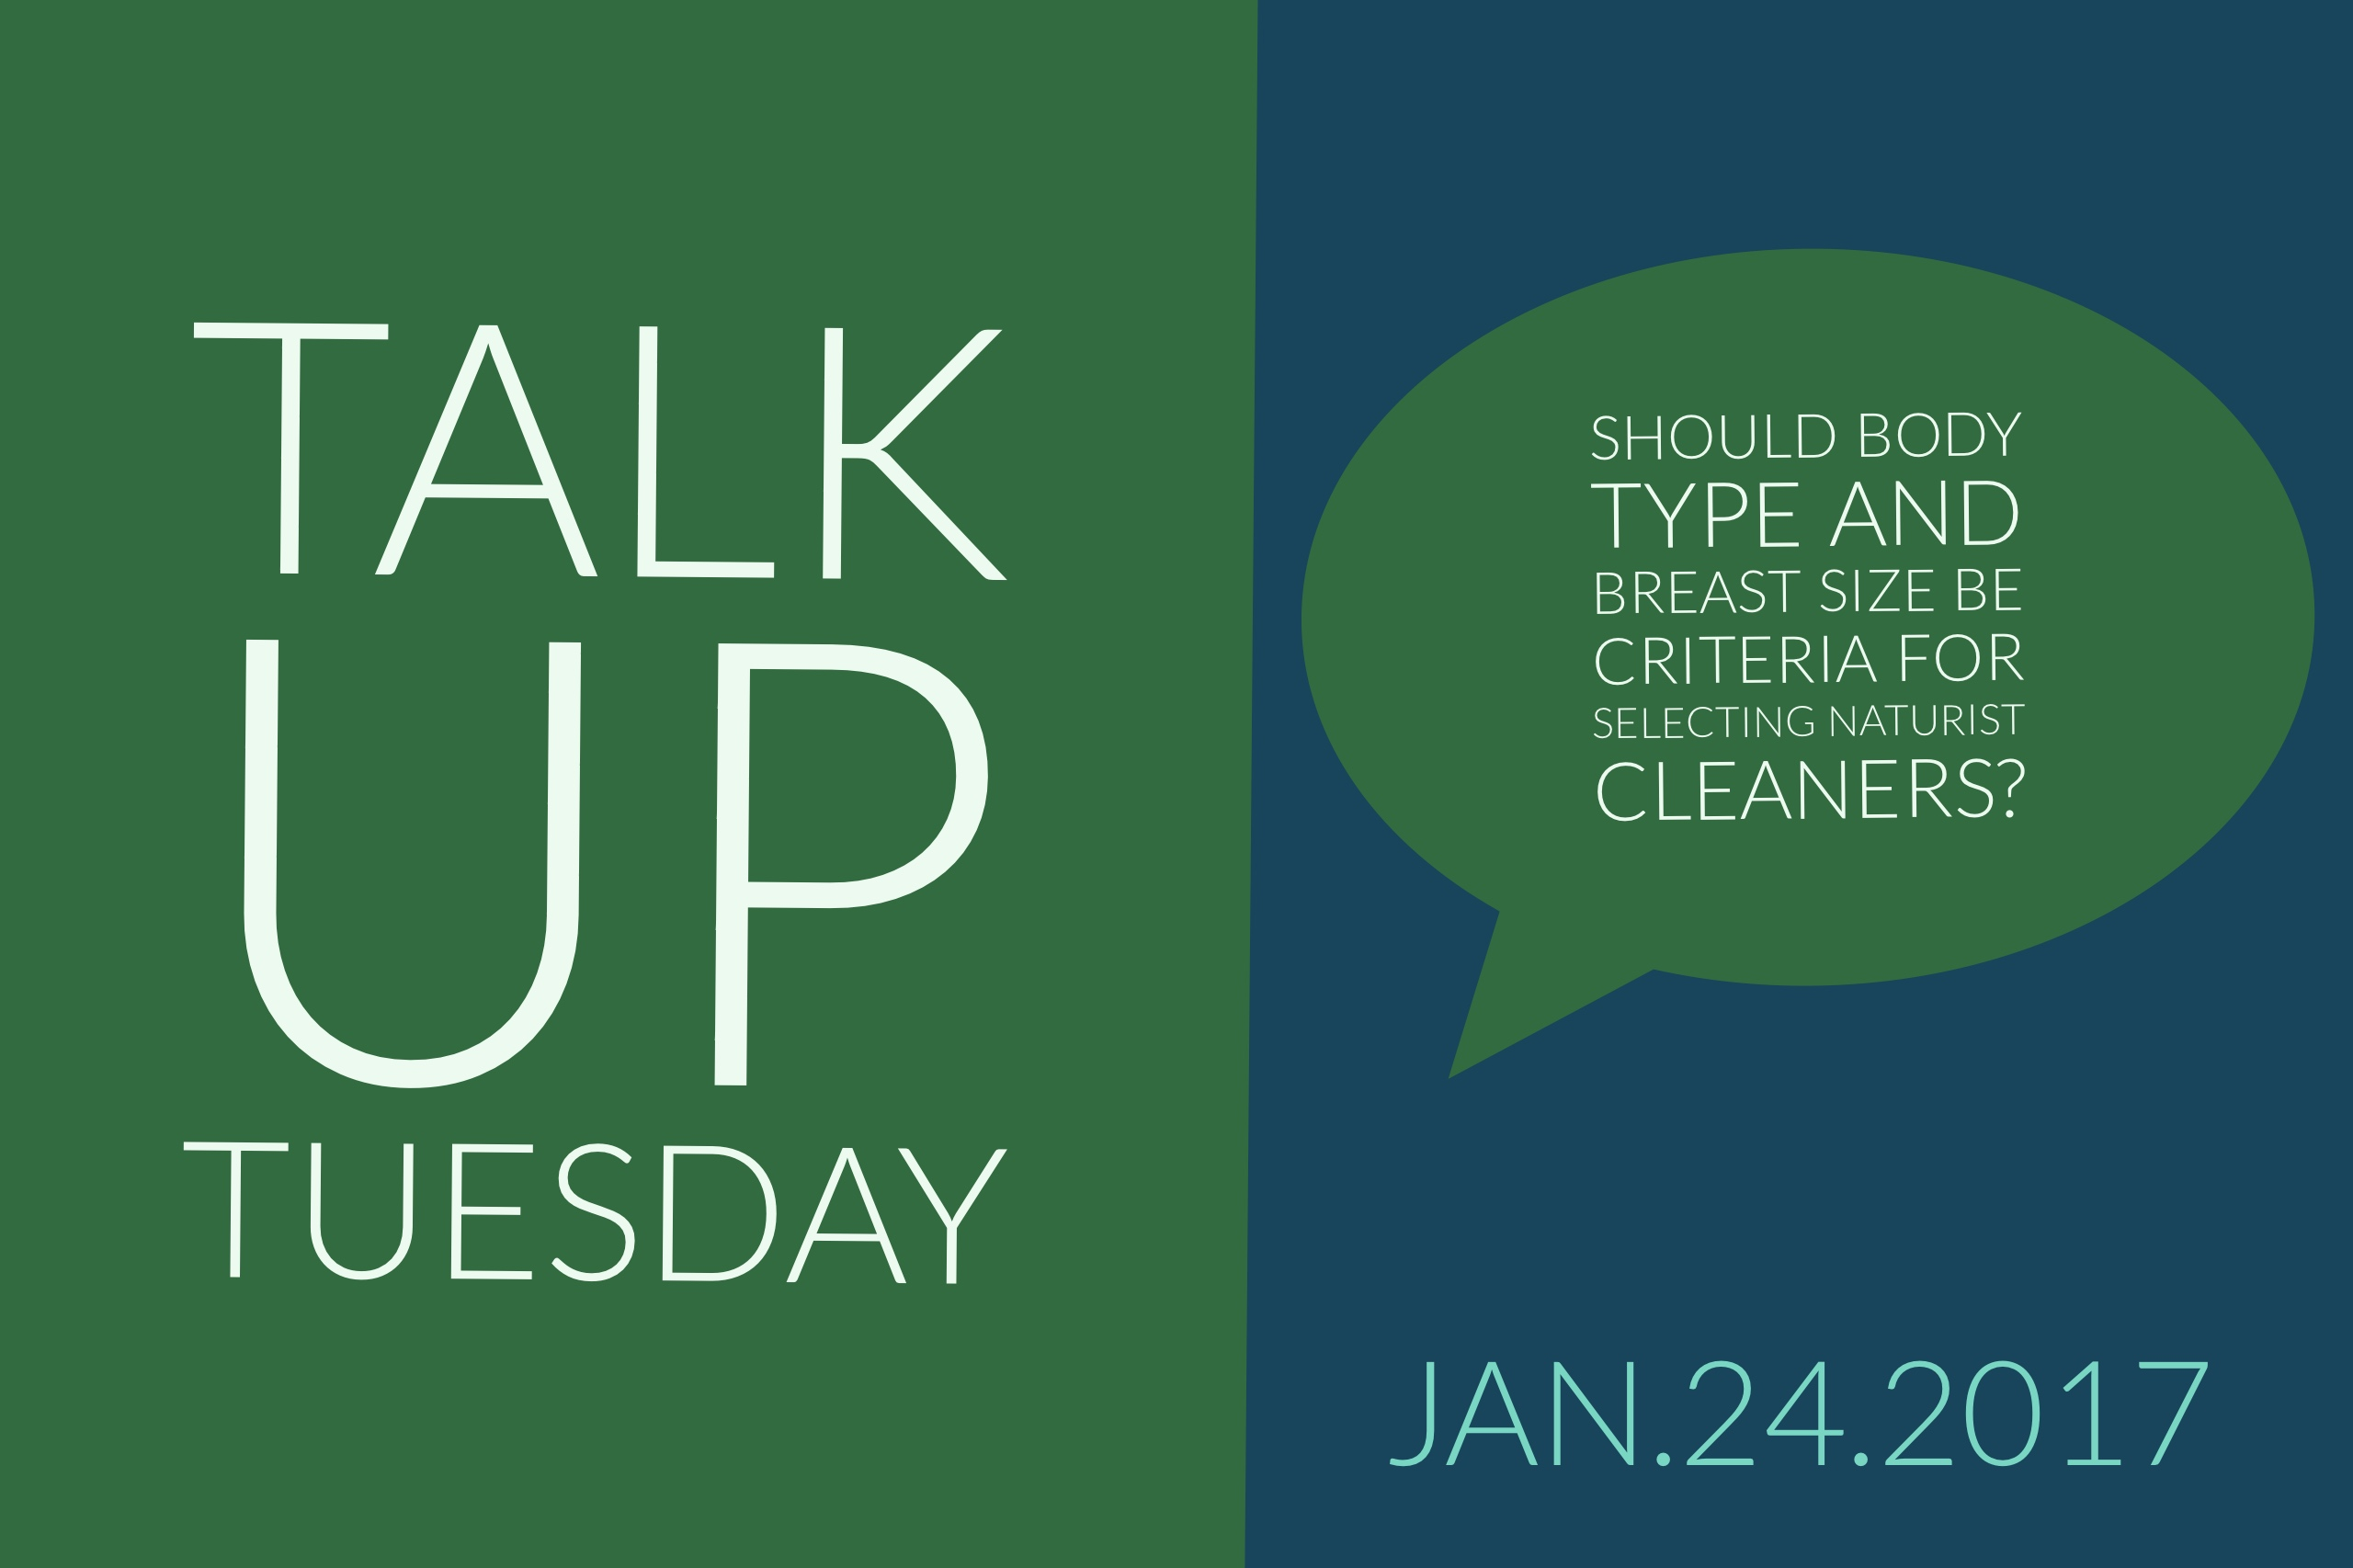 Talk up Tuesday Jan 24 2017